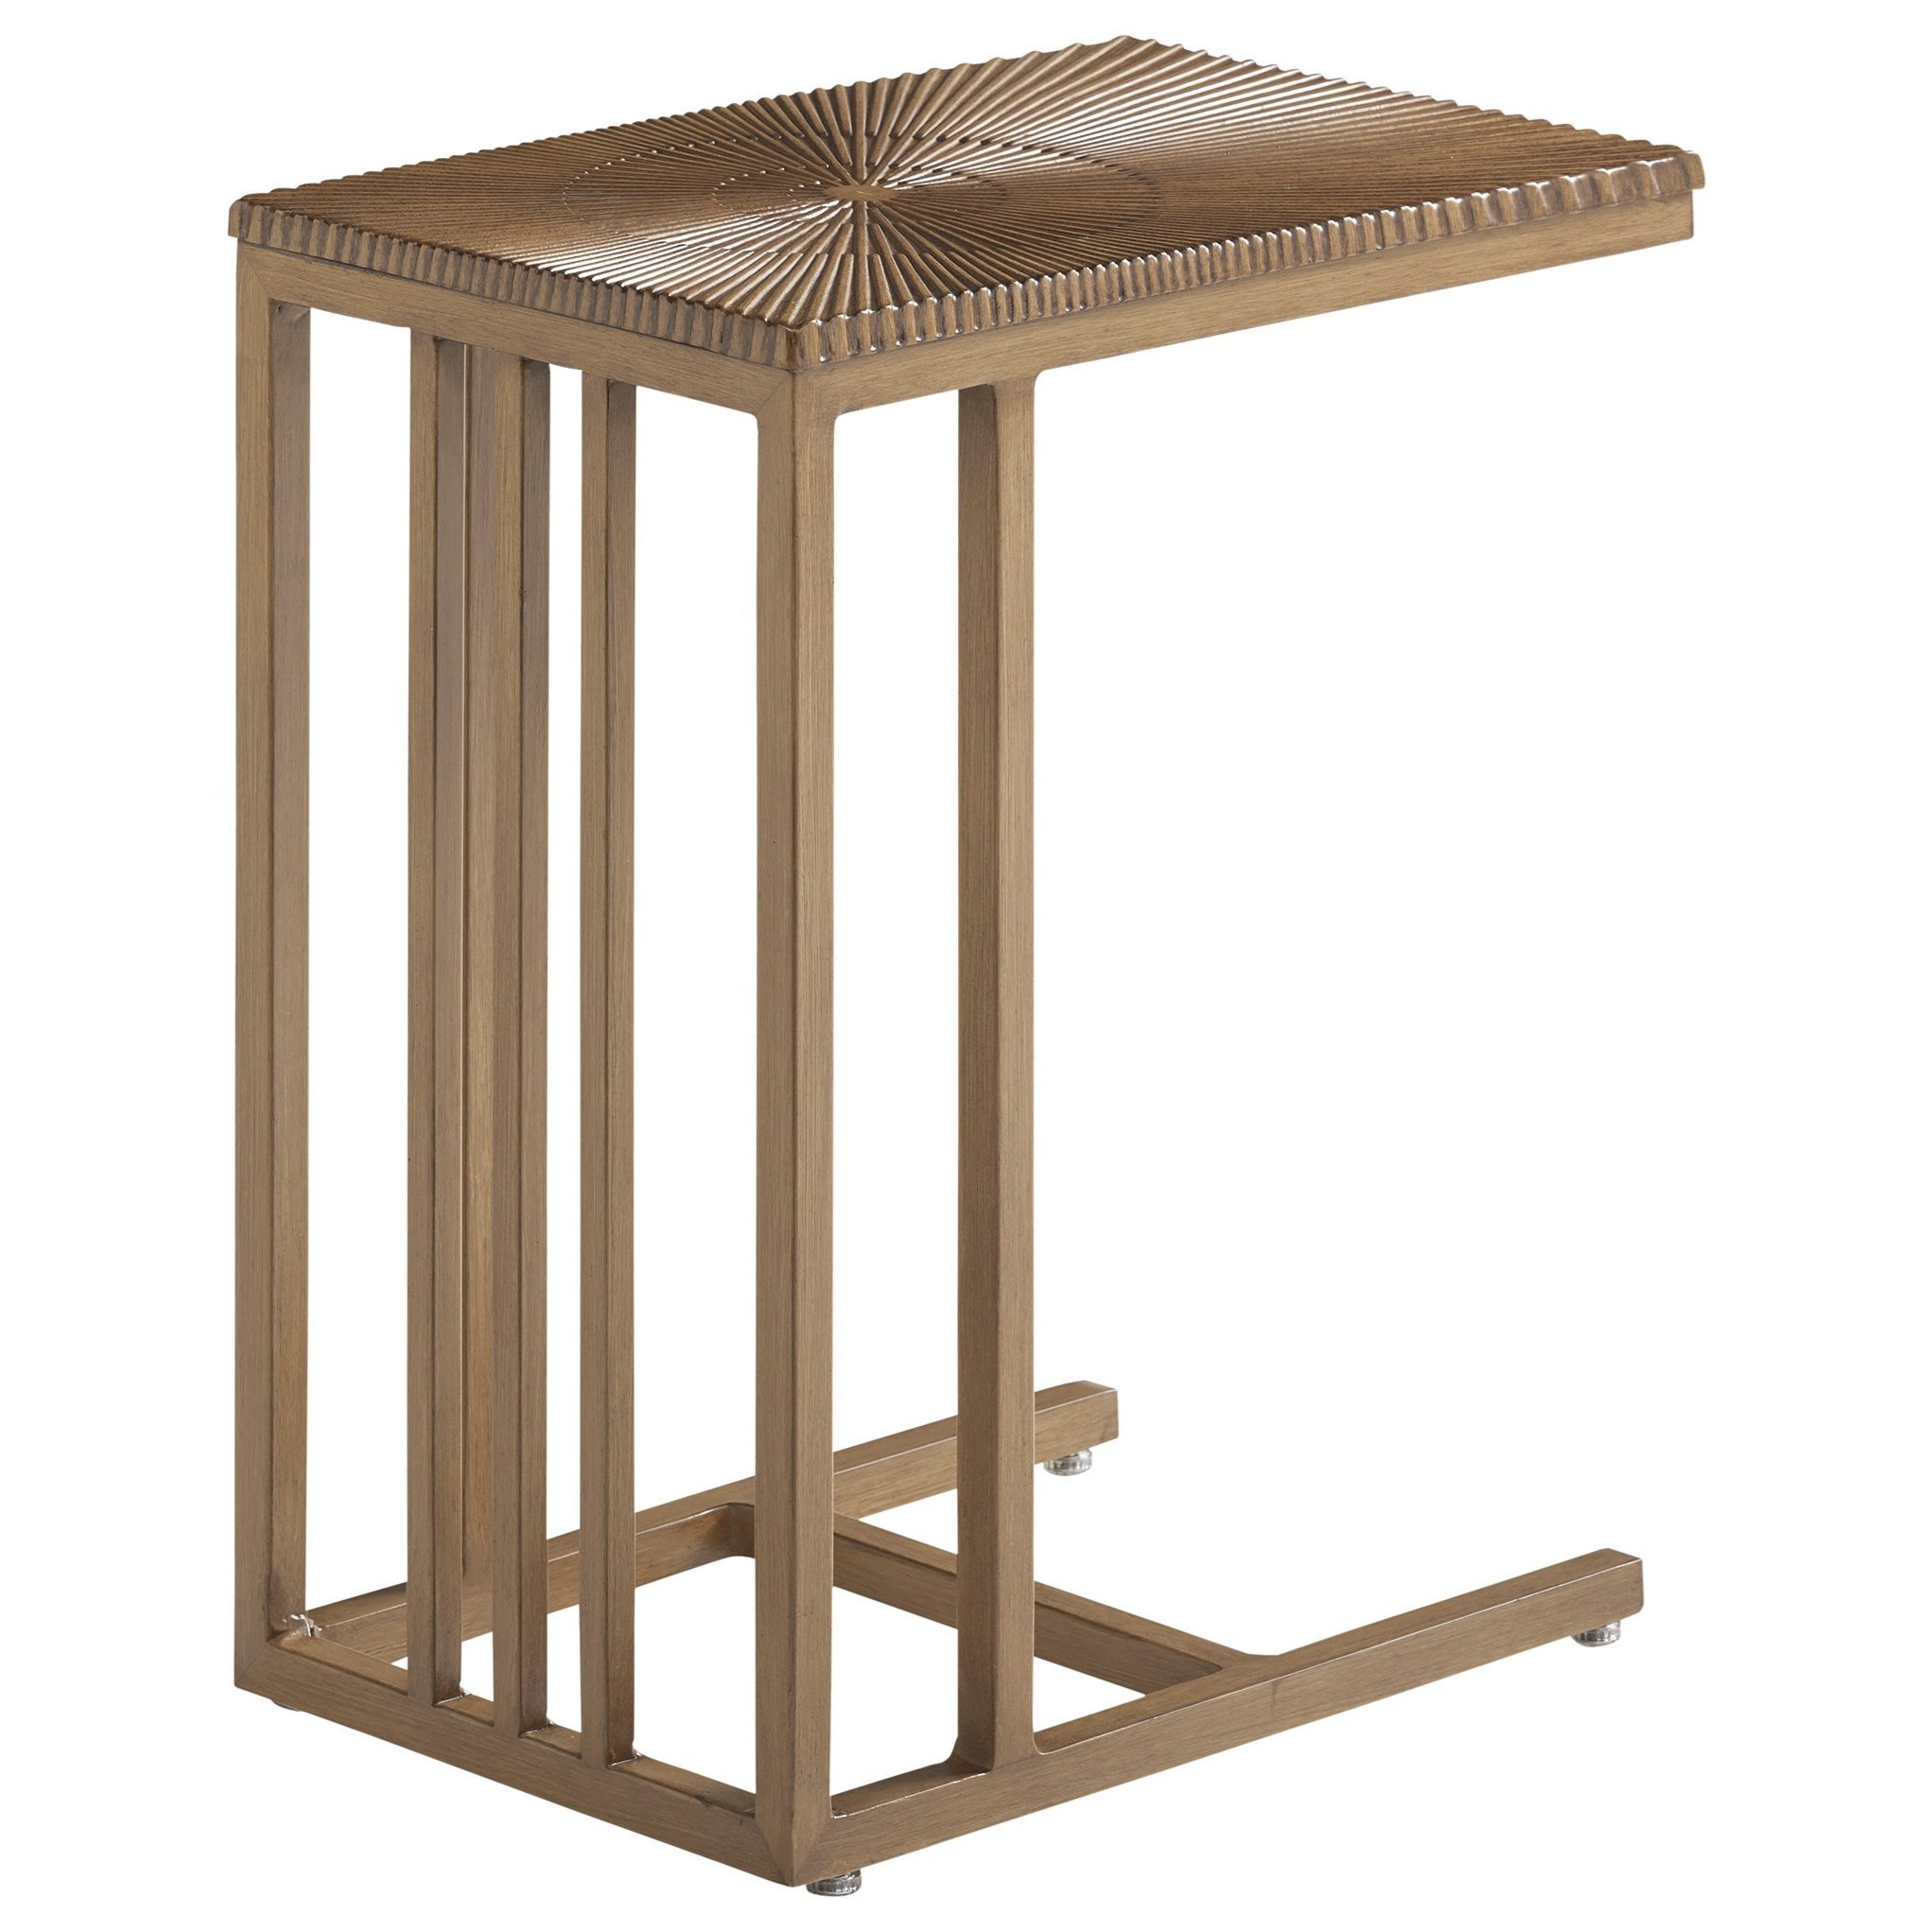 Contemporary Outdoor C-Shape End Table